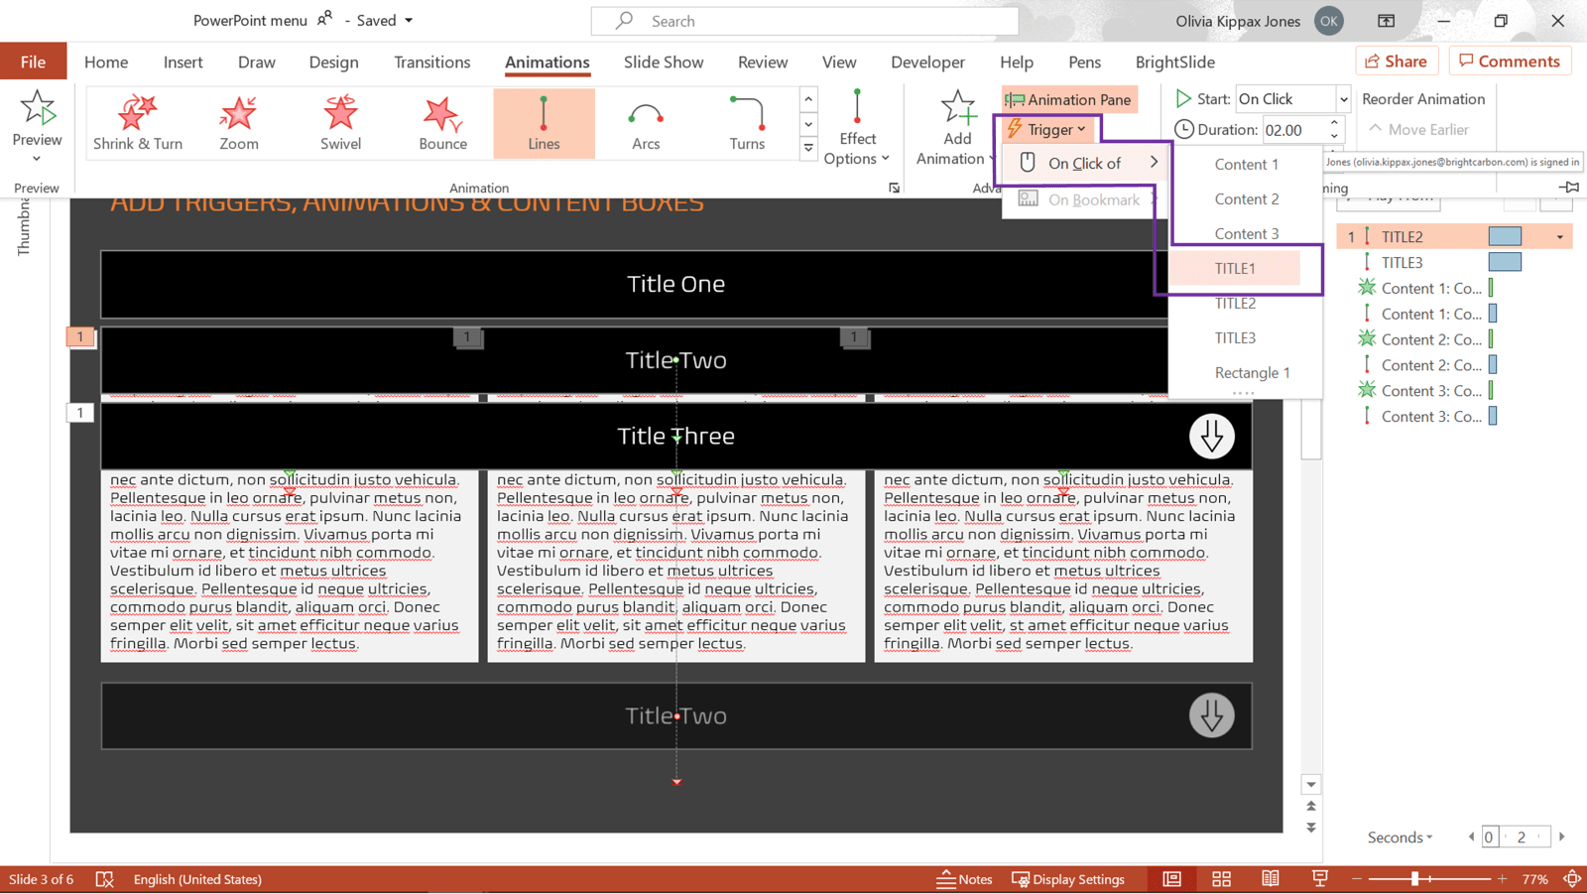 Screenshot of PowerPoint showing the Animations tab with the trigger menu highlighted